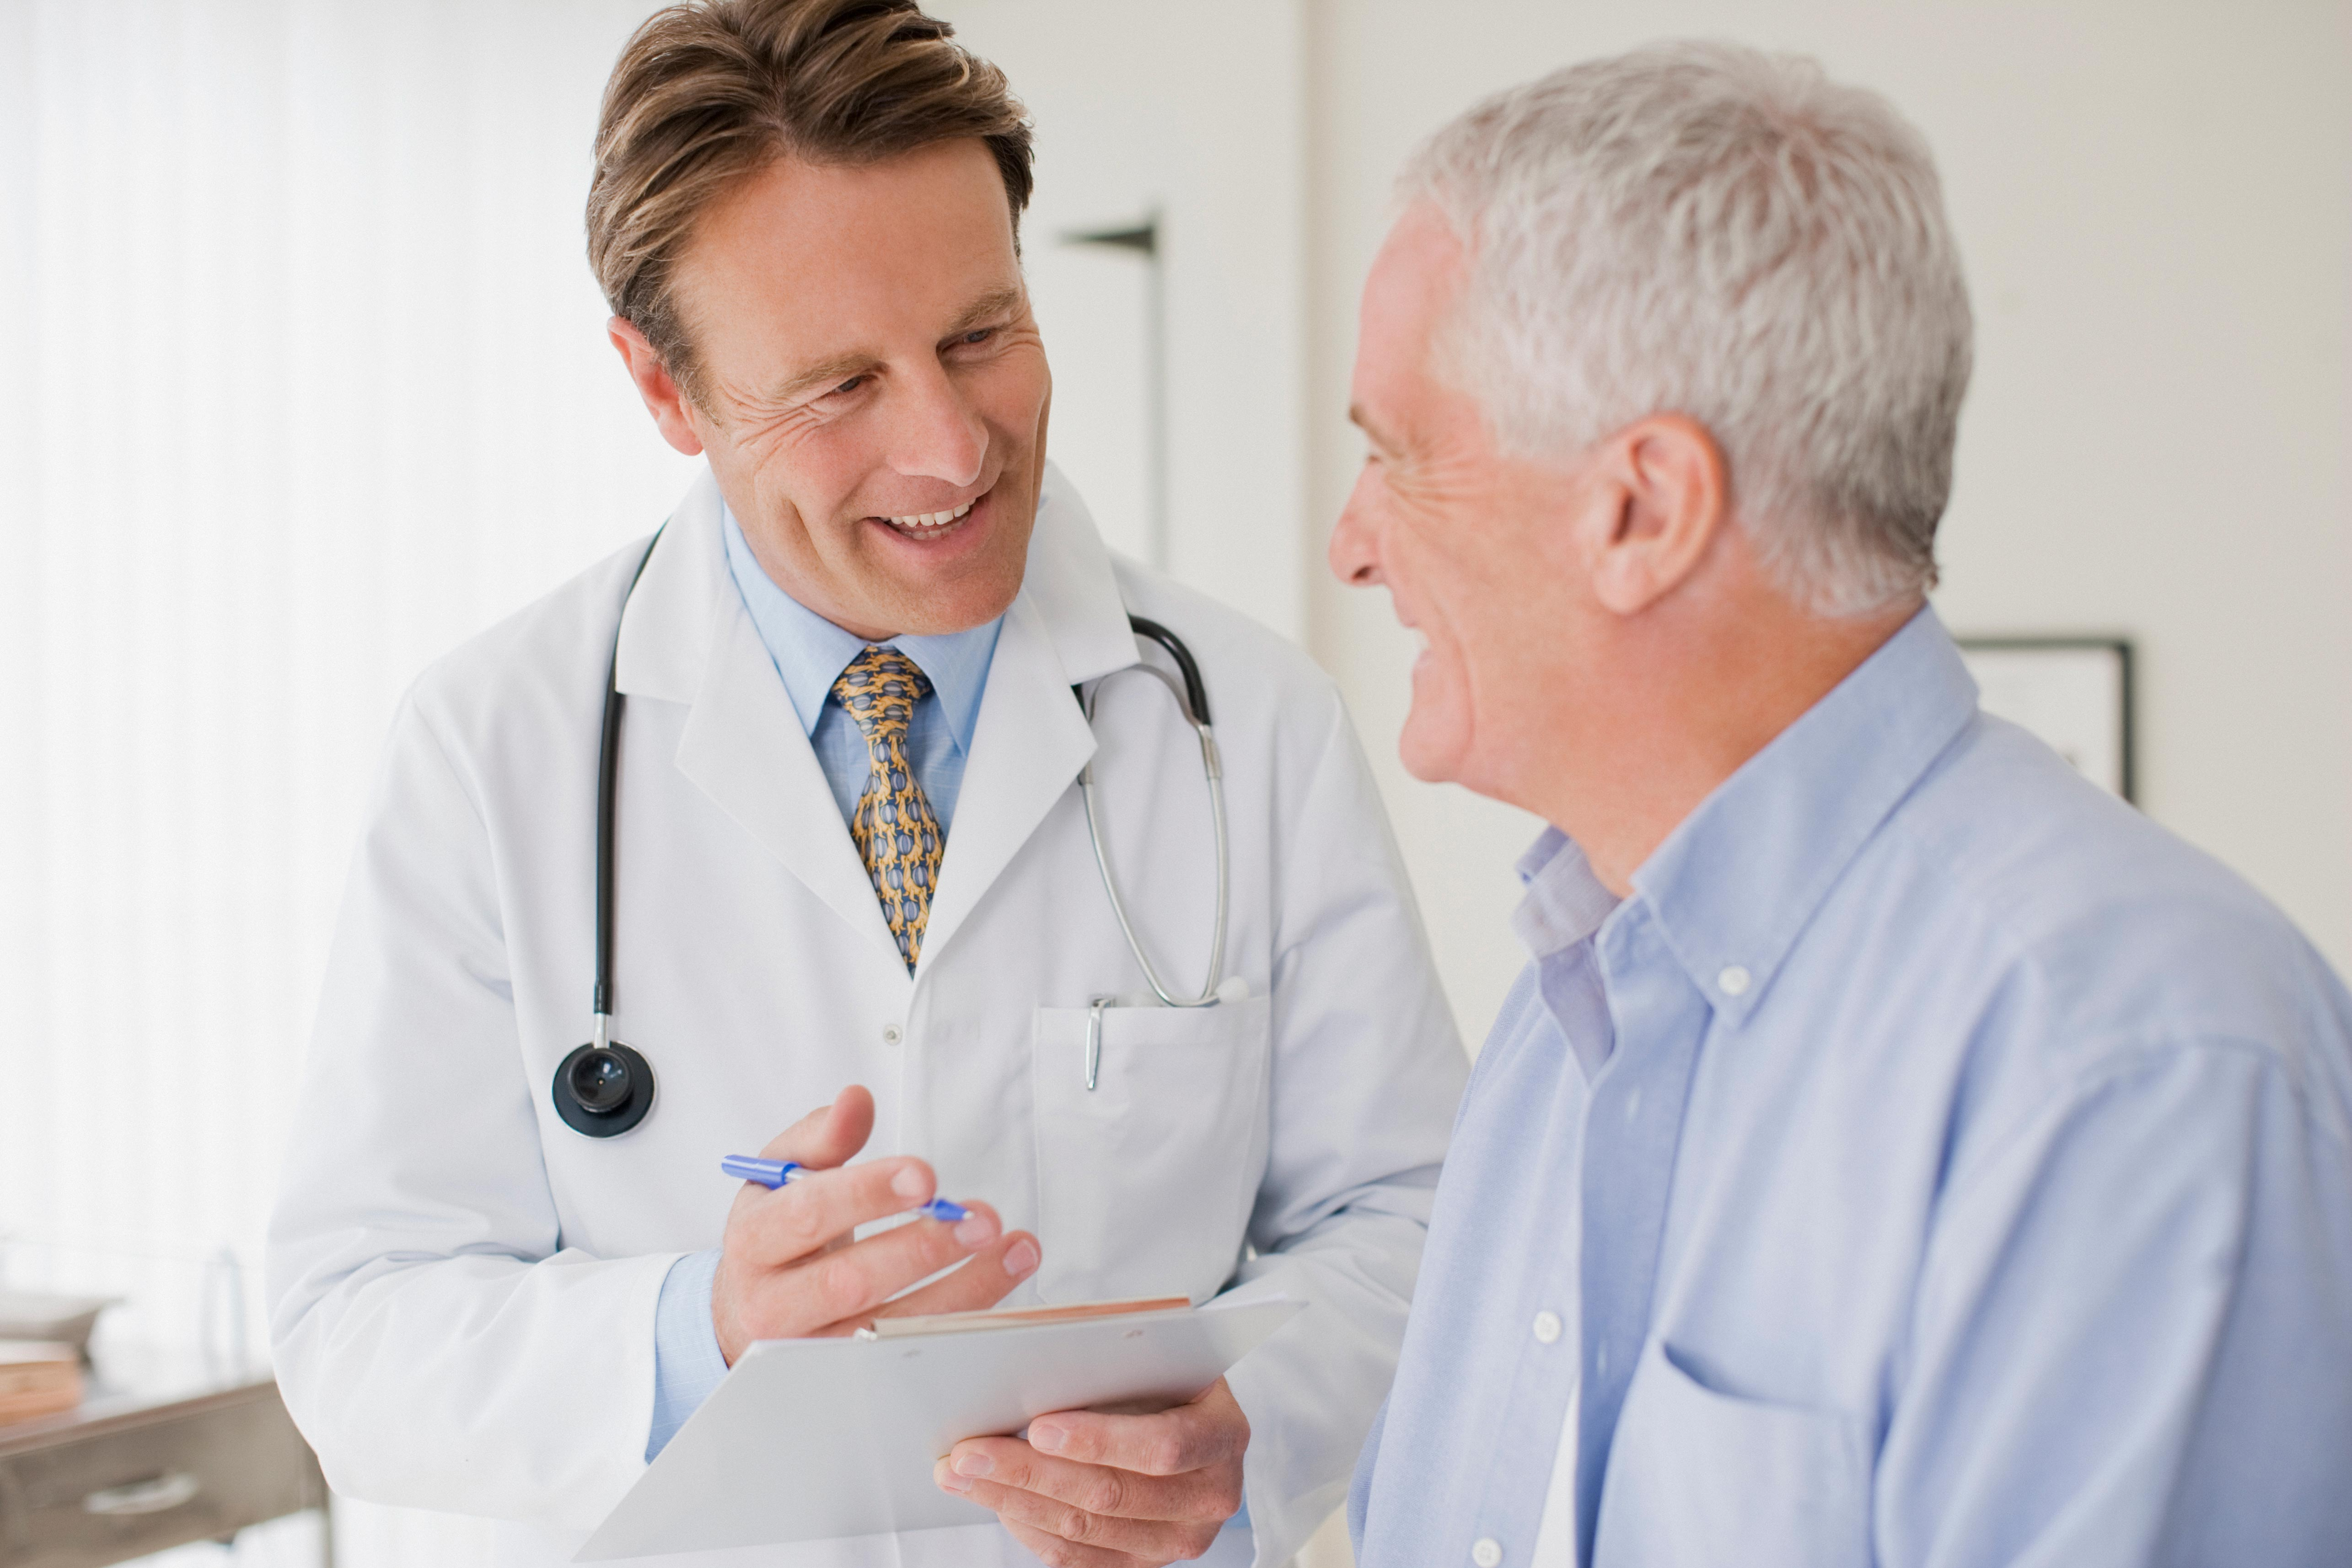 Innovative treatment for enlarged prostate